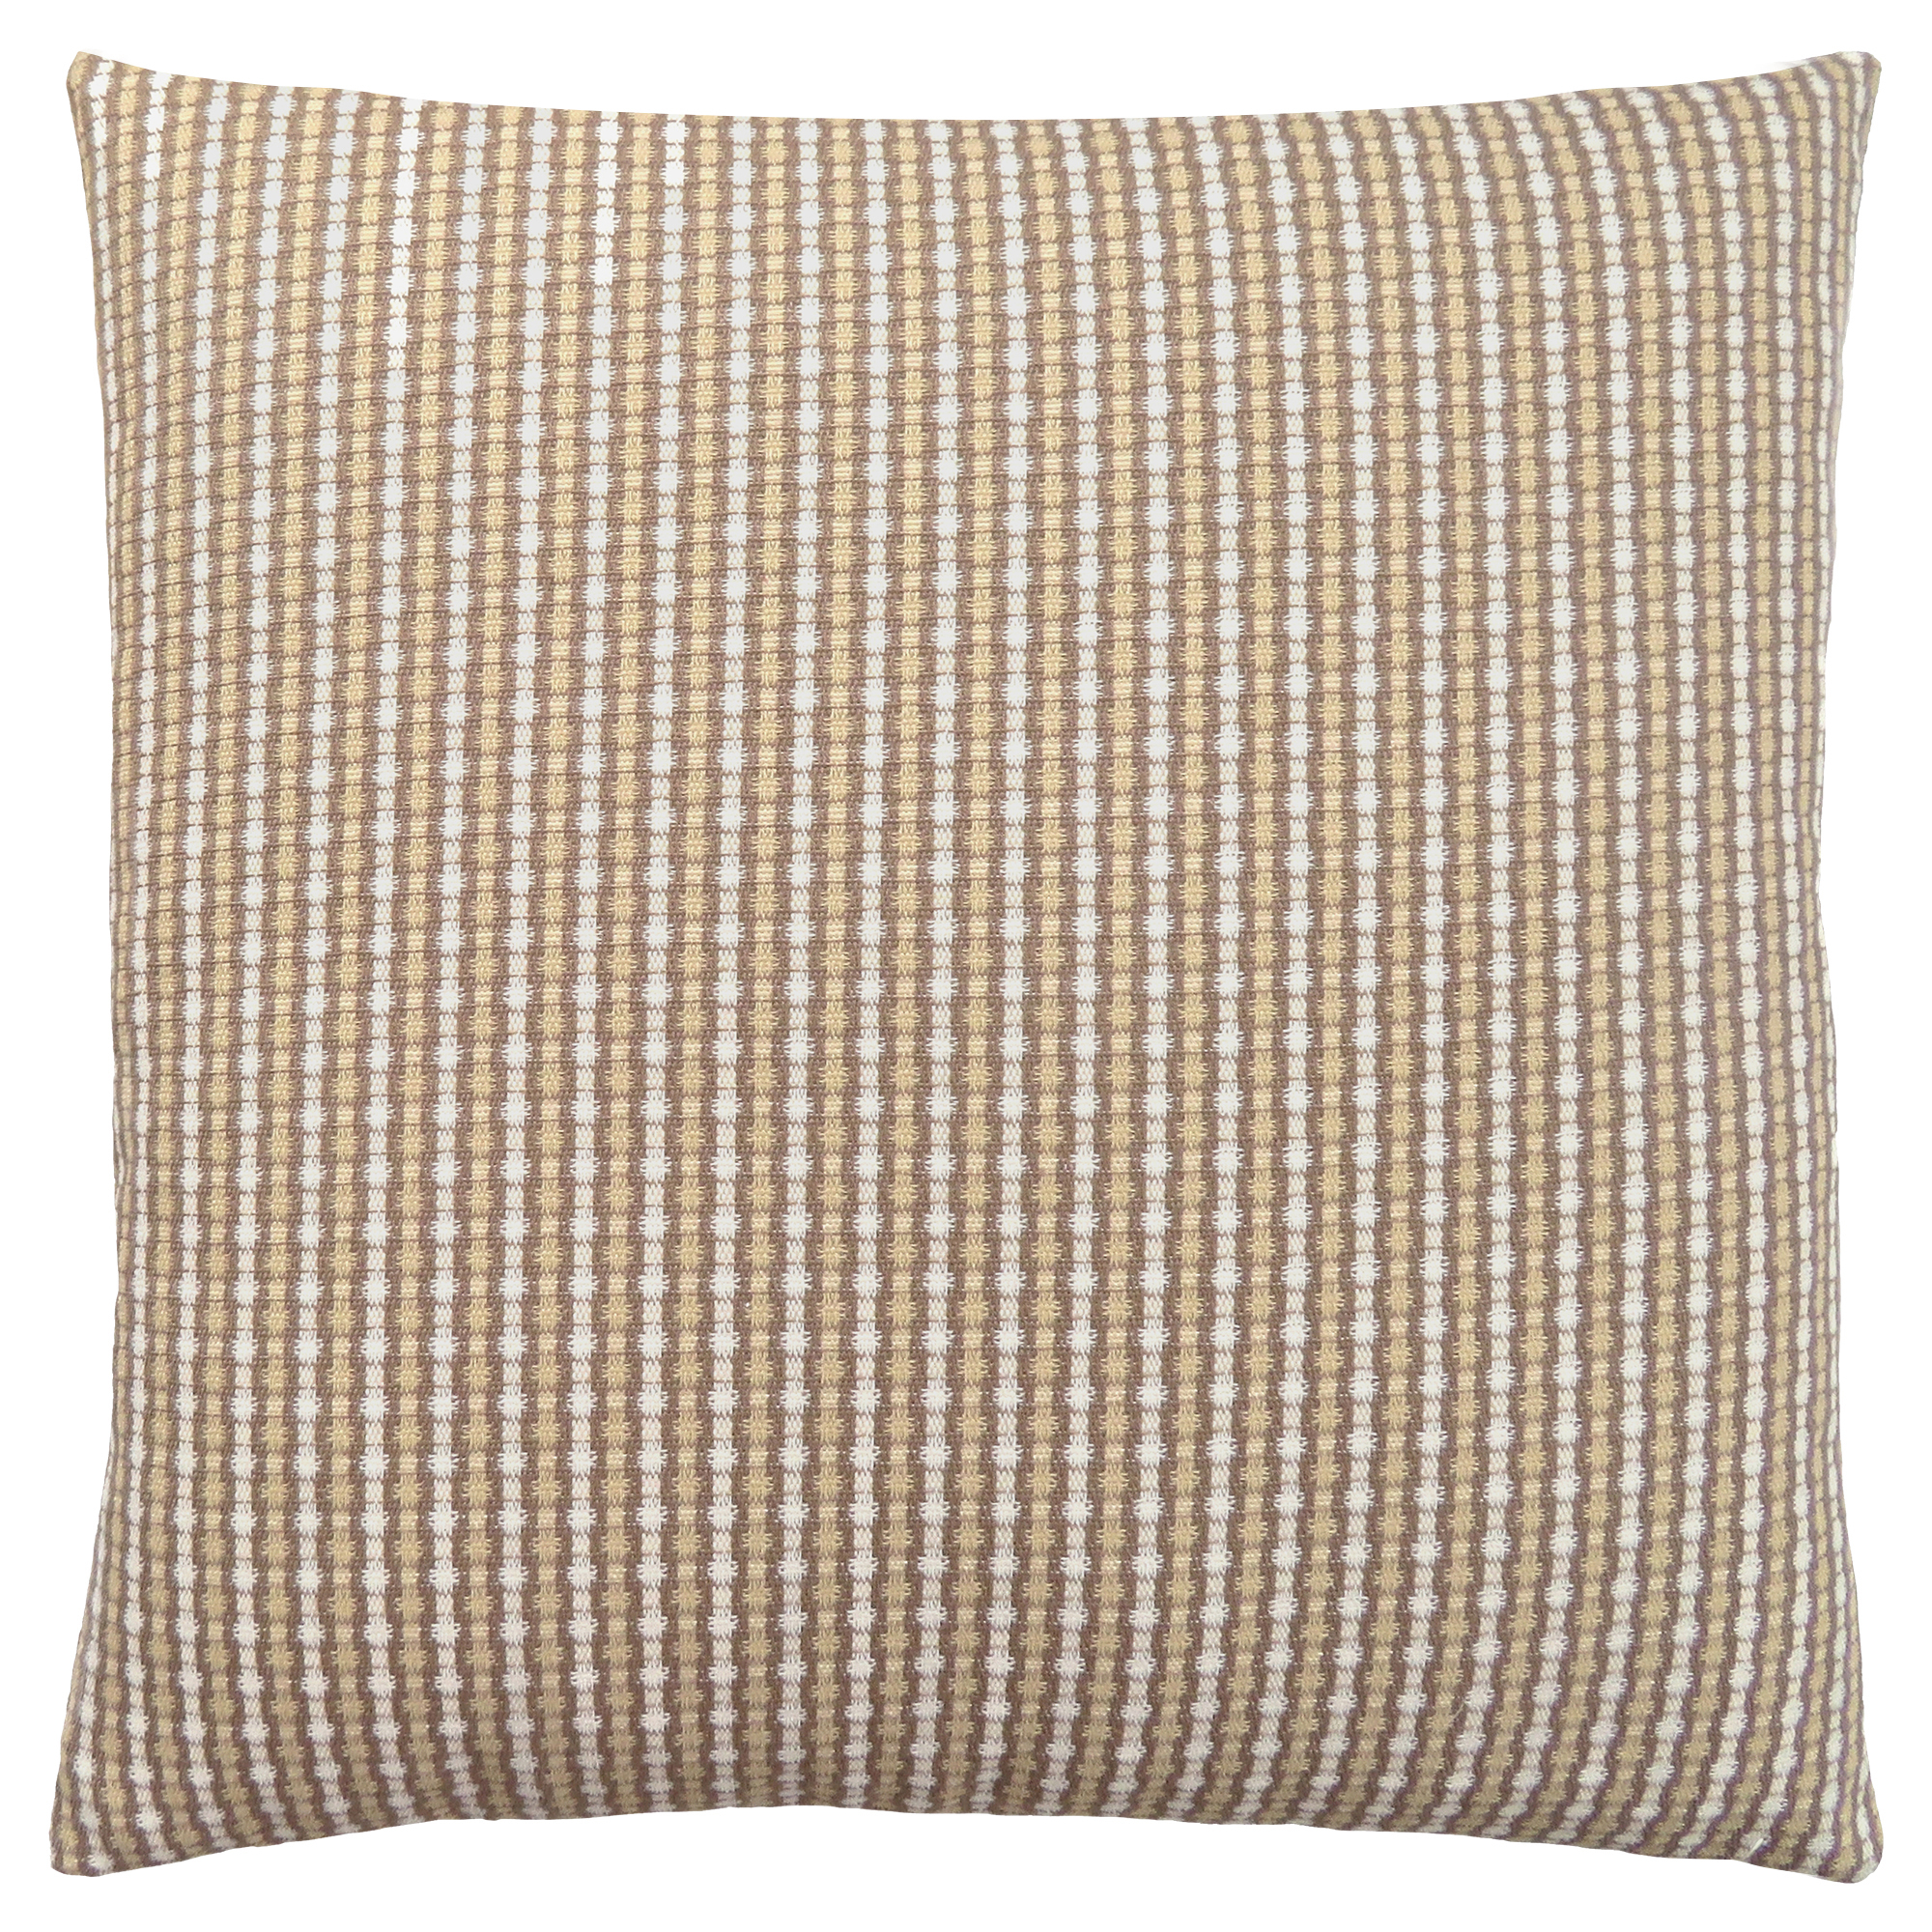 "PILLOW - 18""X 18"" / LIGHT / DARK TAUPE ABSTRACT DOT / 1PC"